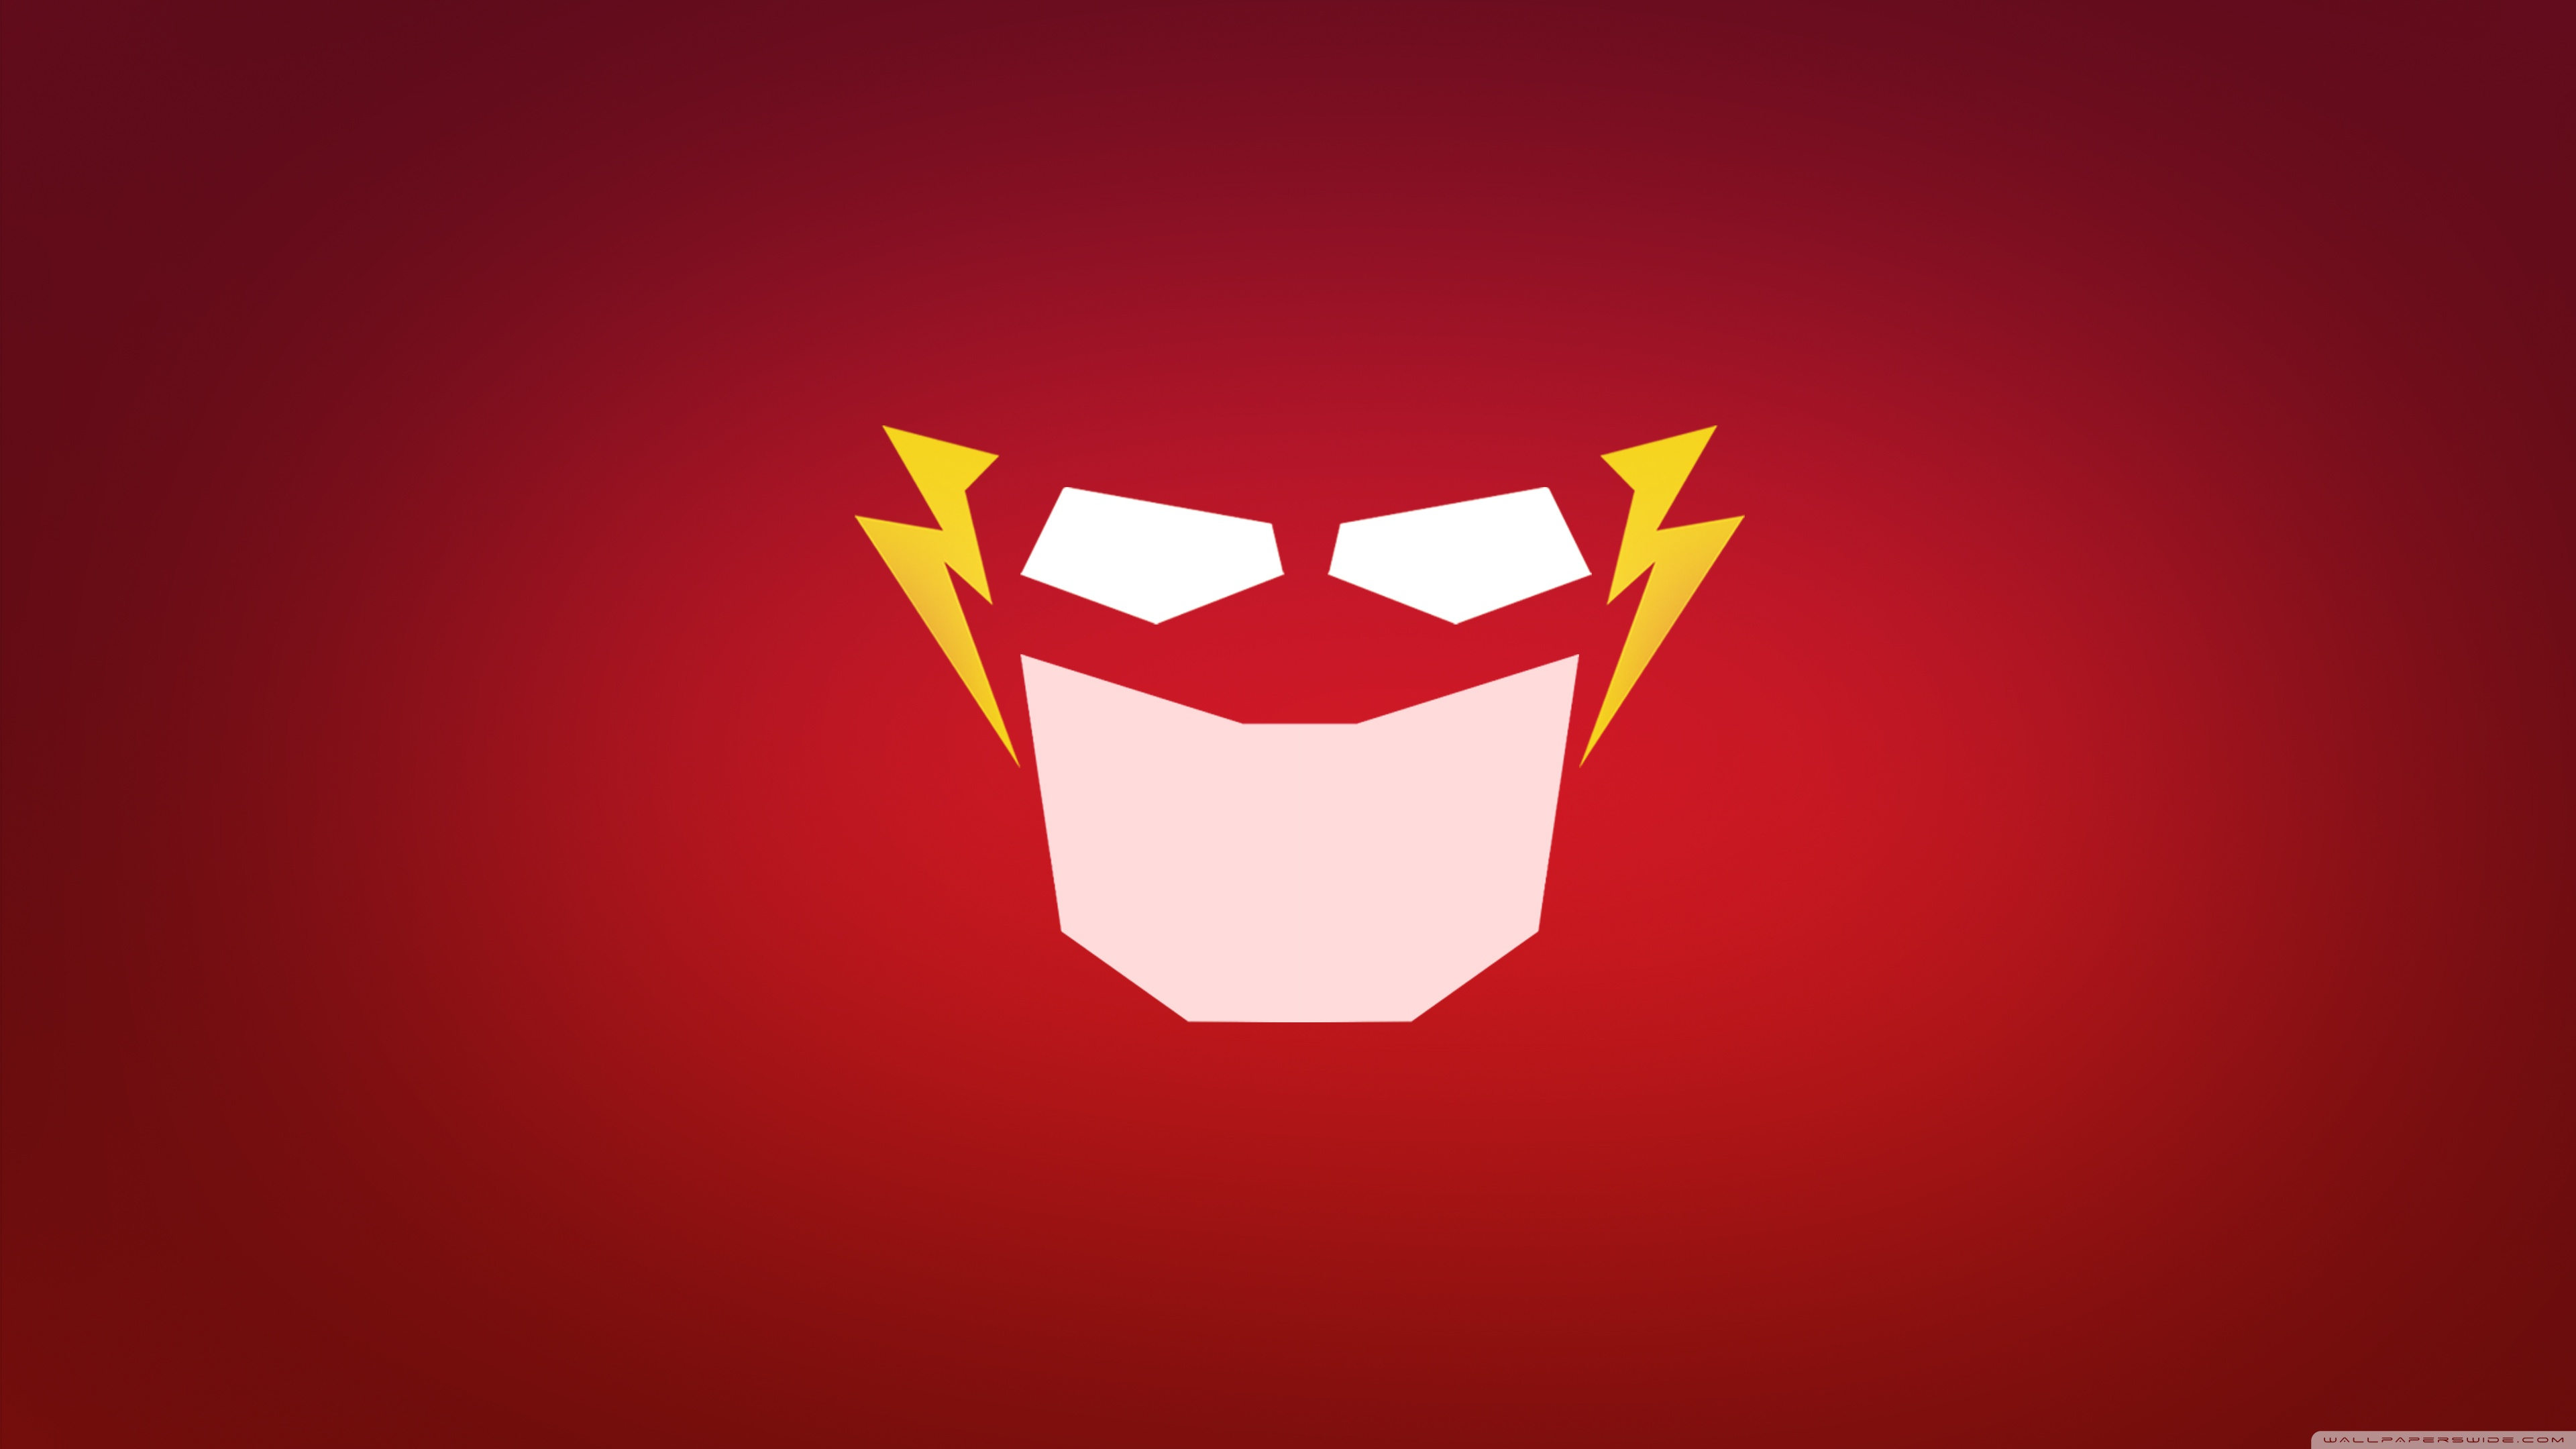 the flash logo wallpaper #22